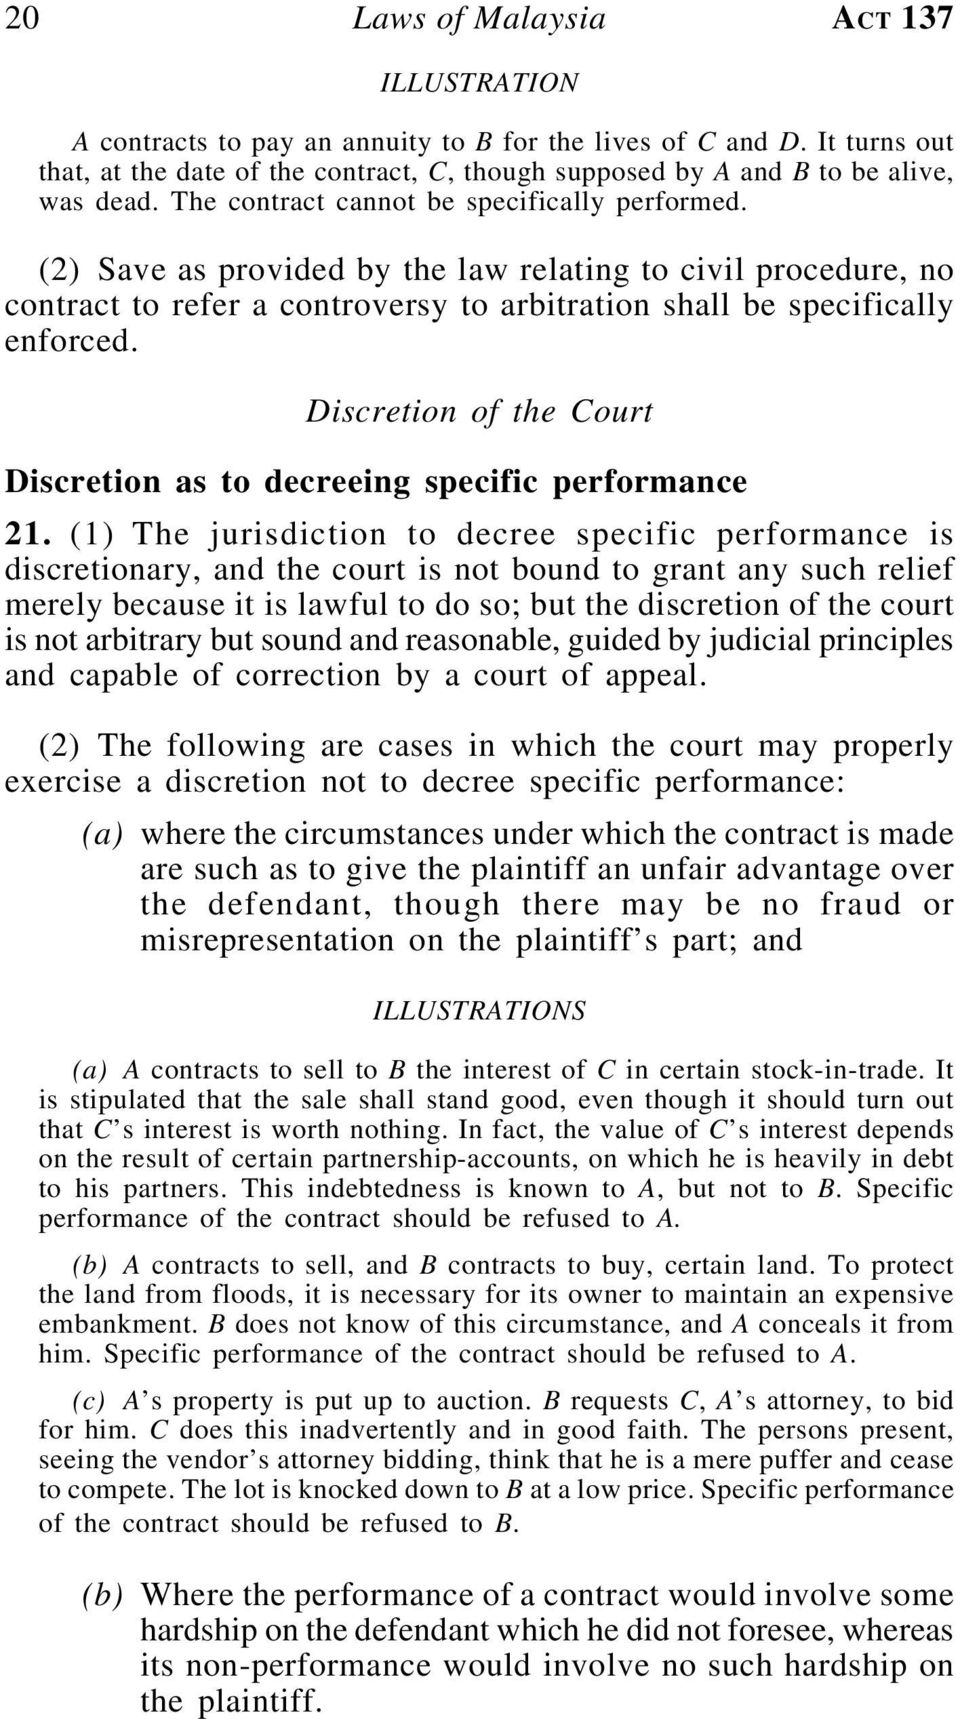 (2) Save as provided by the law relating to civil procedure, no contract to refer a controversy to arbitration shall be specifically enforced.